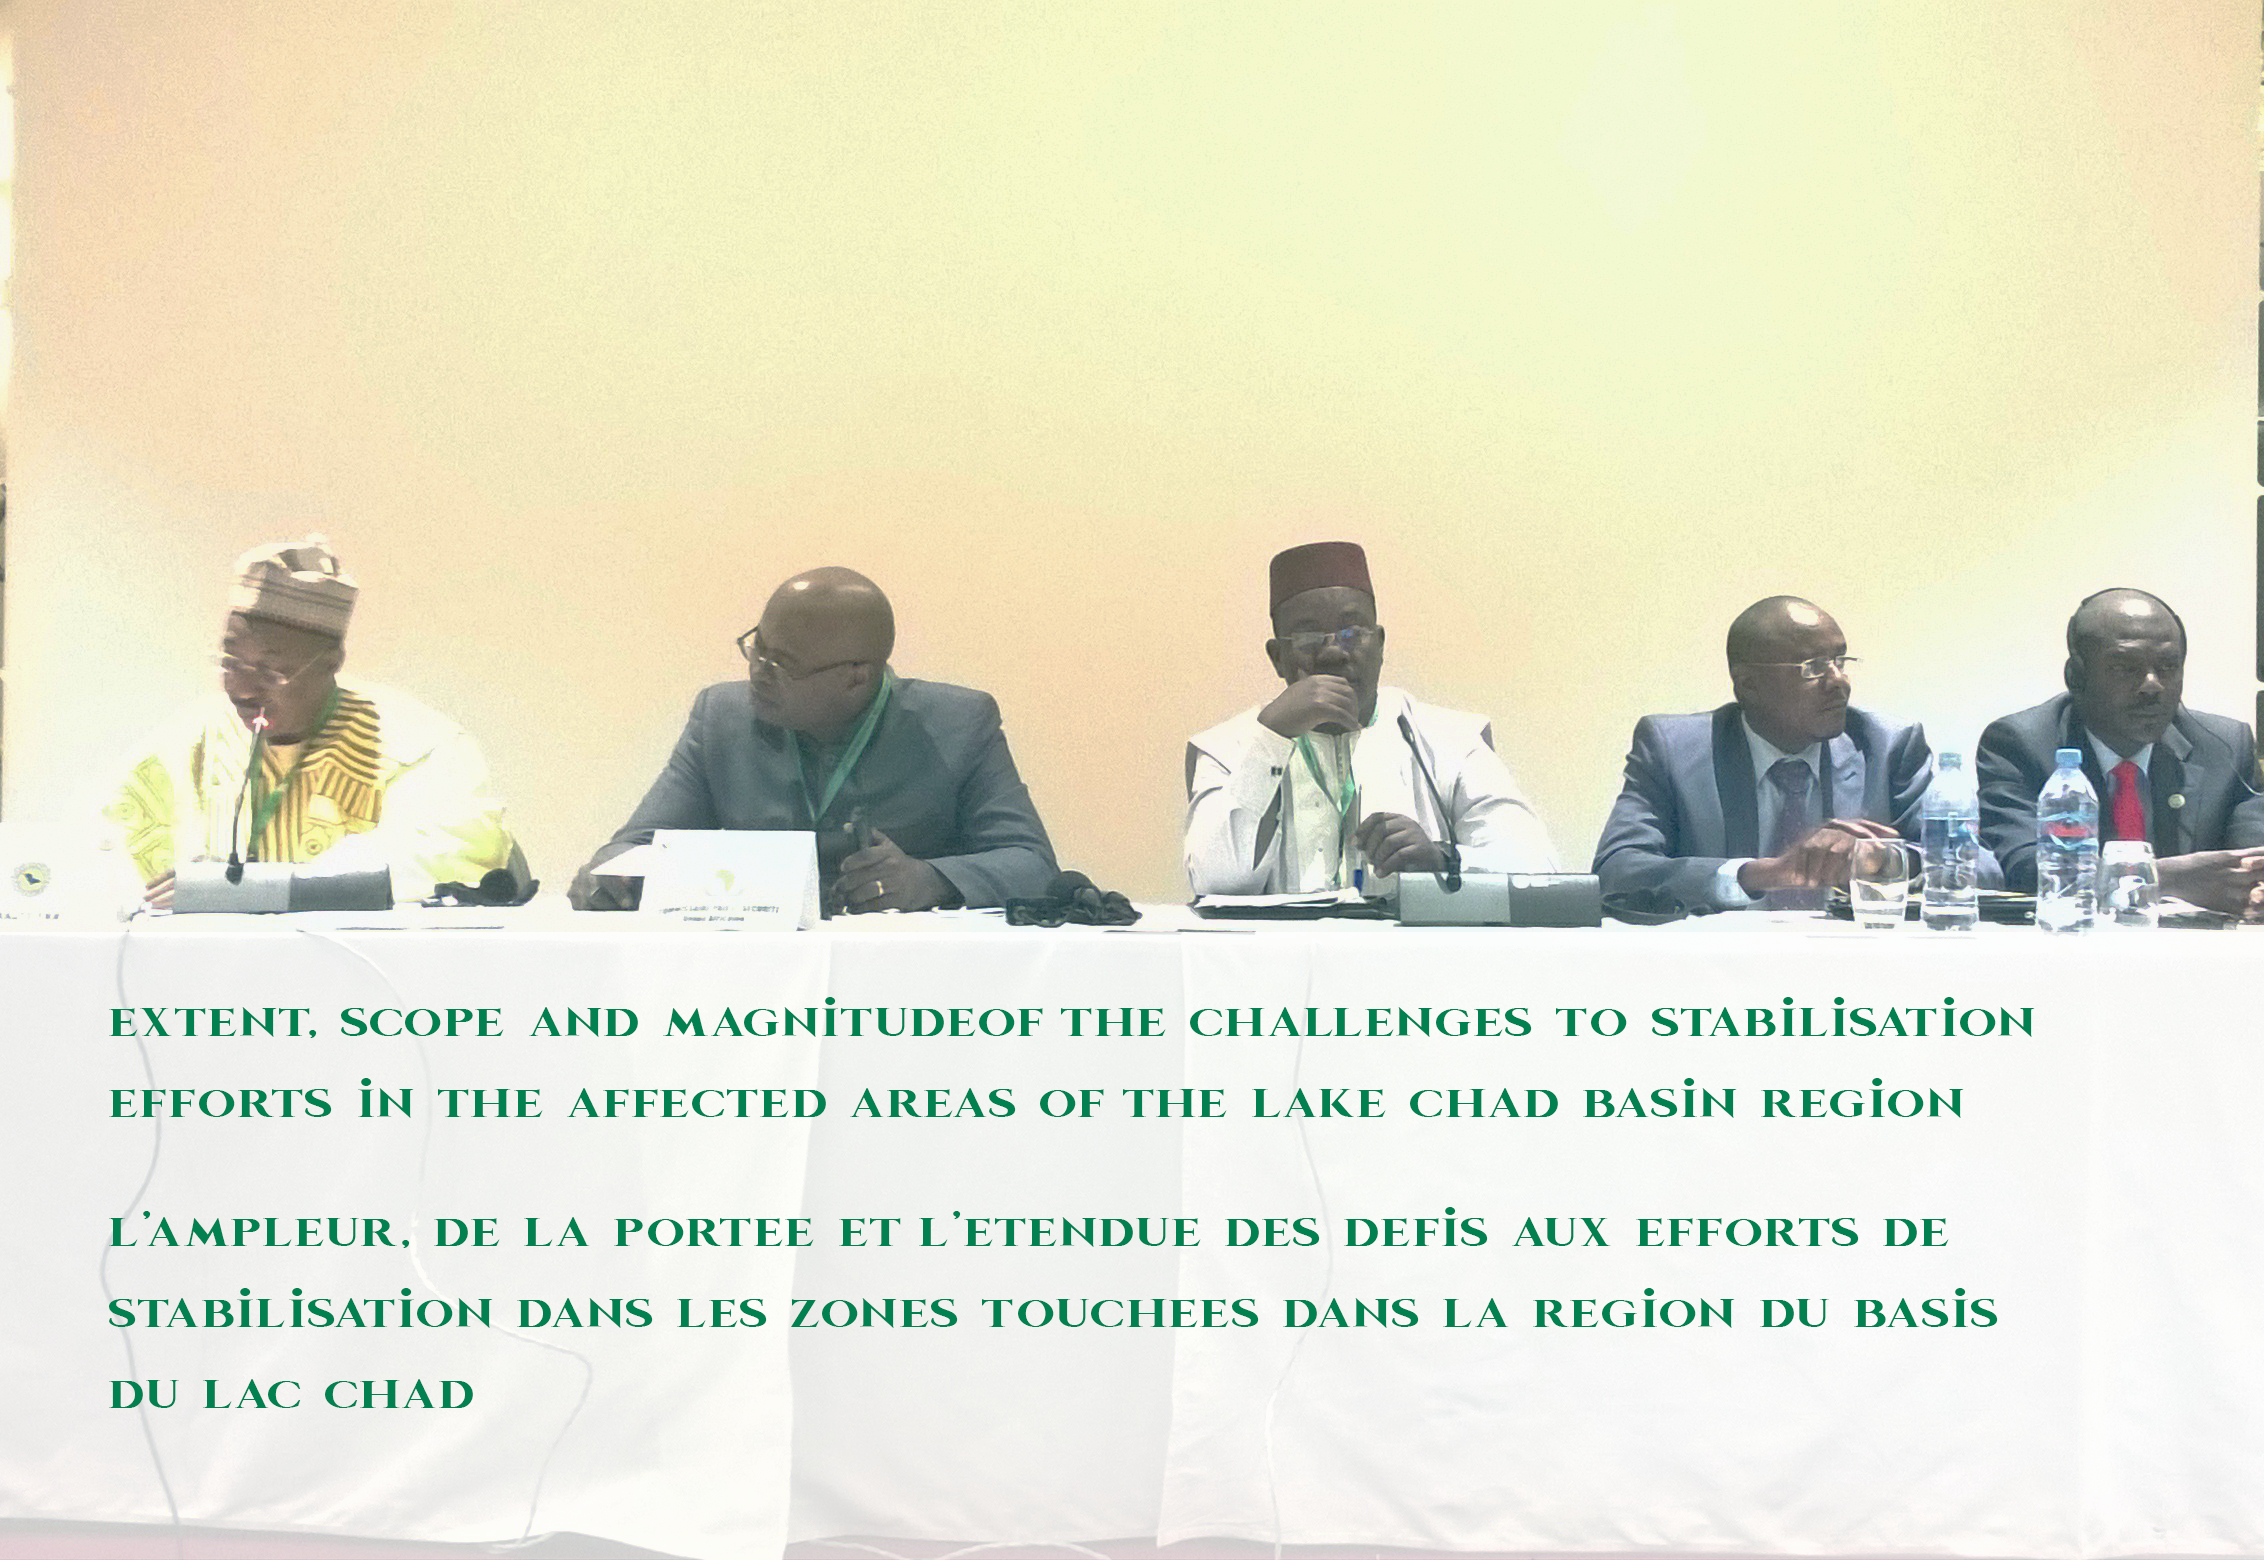 Lake Chad Basin Commission and the African Union convene a Regional Stabilization Conference for areas in the Lake Chad Basin Region affected by Boko Haram activities